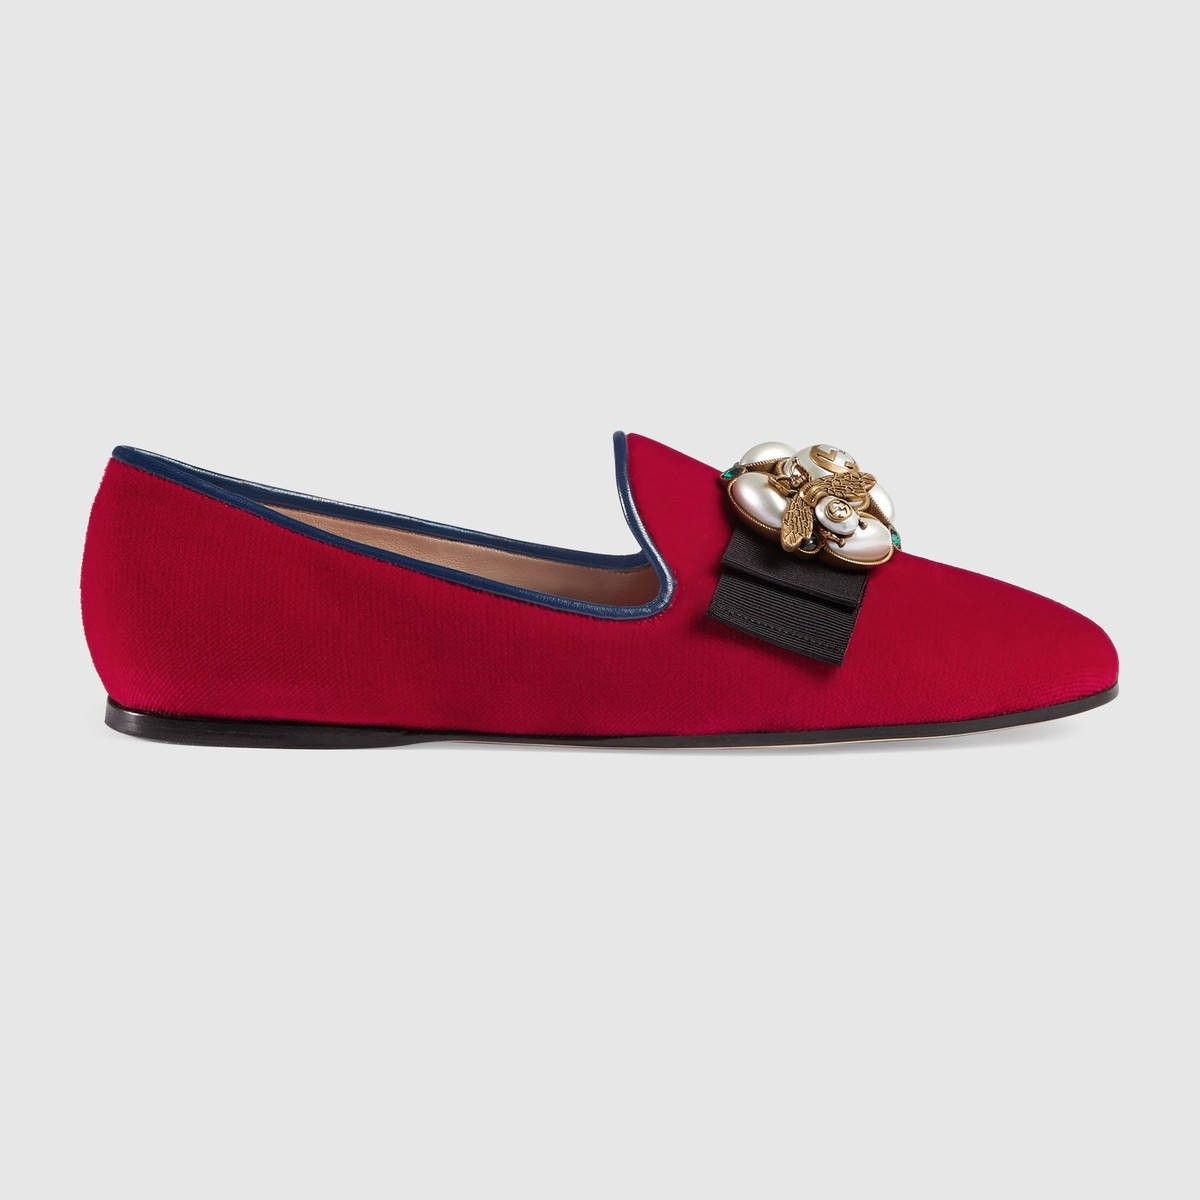 b91083efce7 GUCCI Velvet ballet flat with bee - hibiscus red velvet.  gucci  shoes